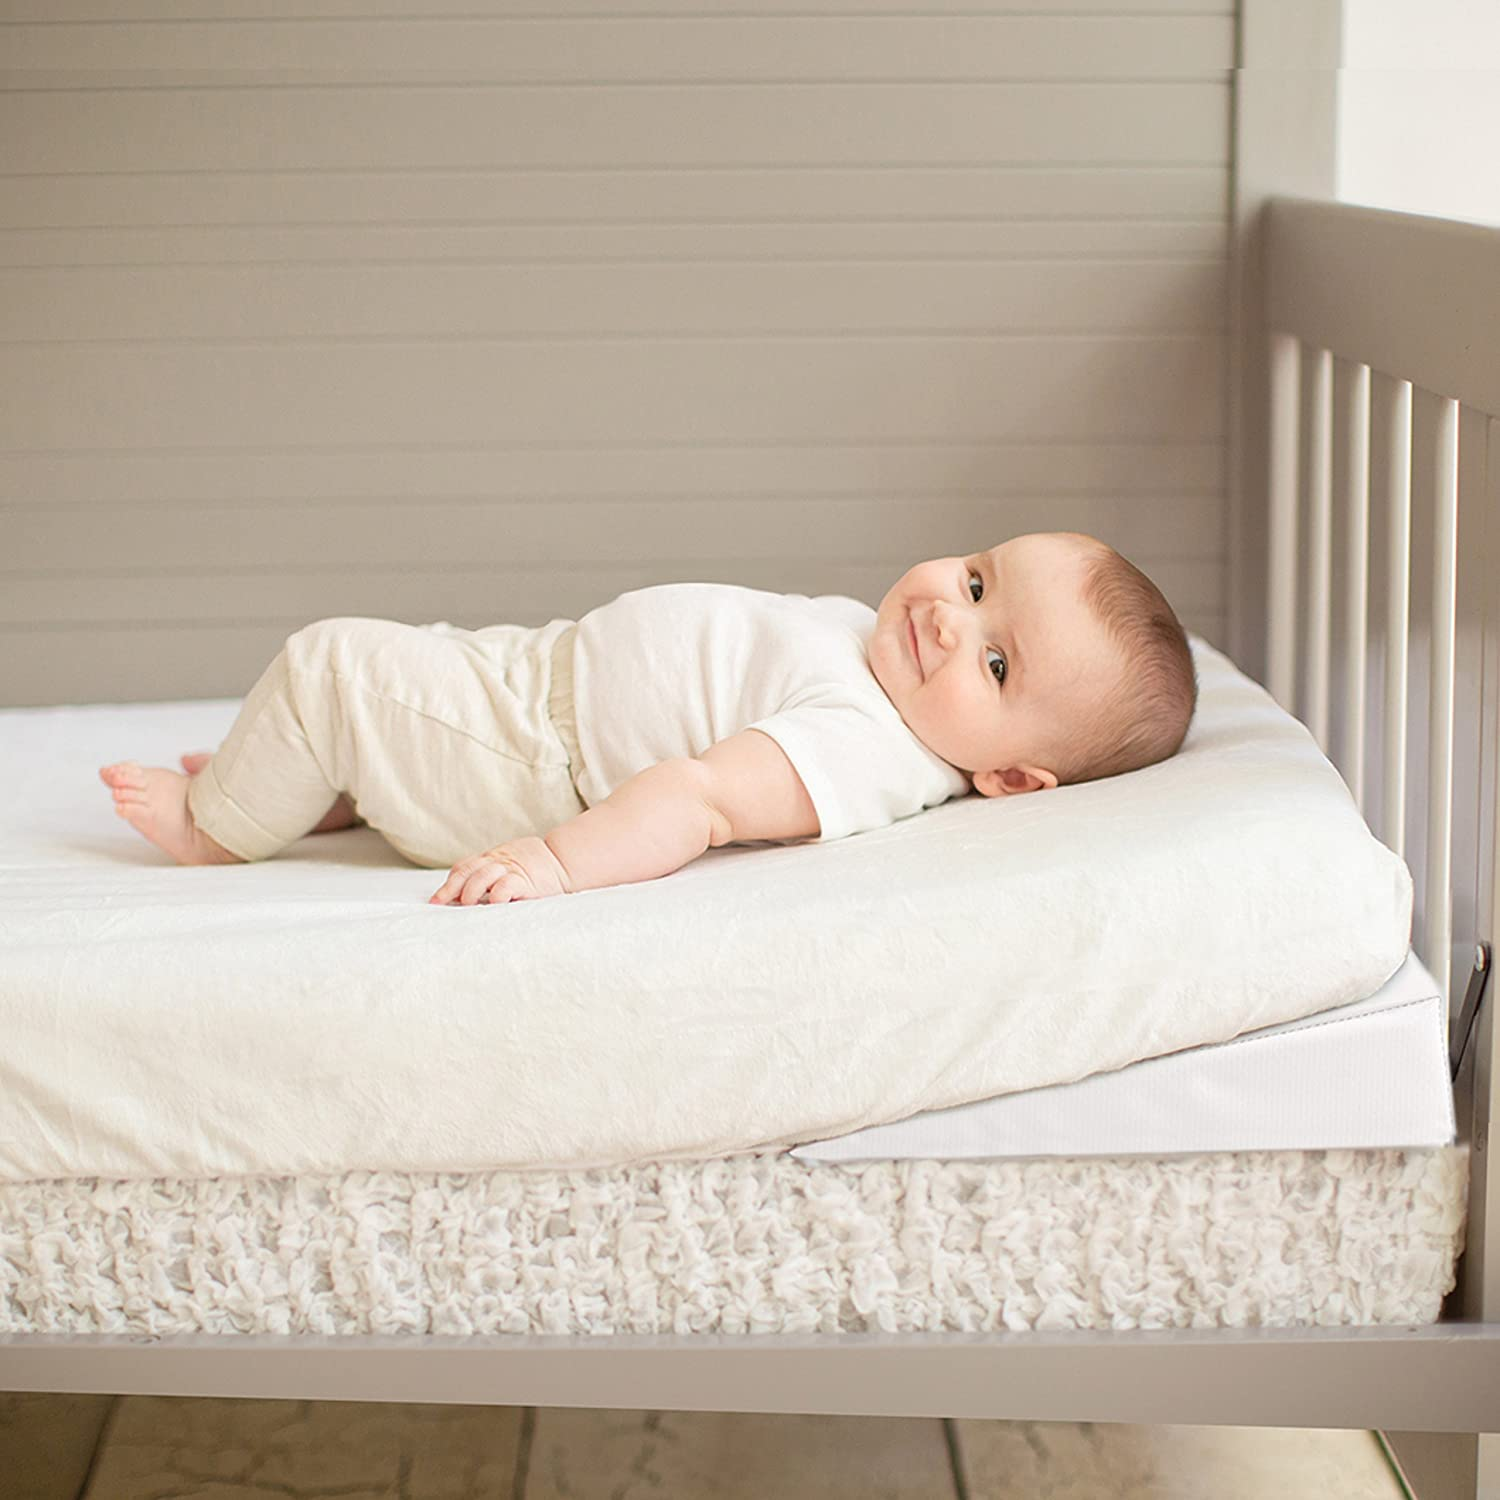 Baby bed for reflux - Baby Bed For Reflux 59